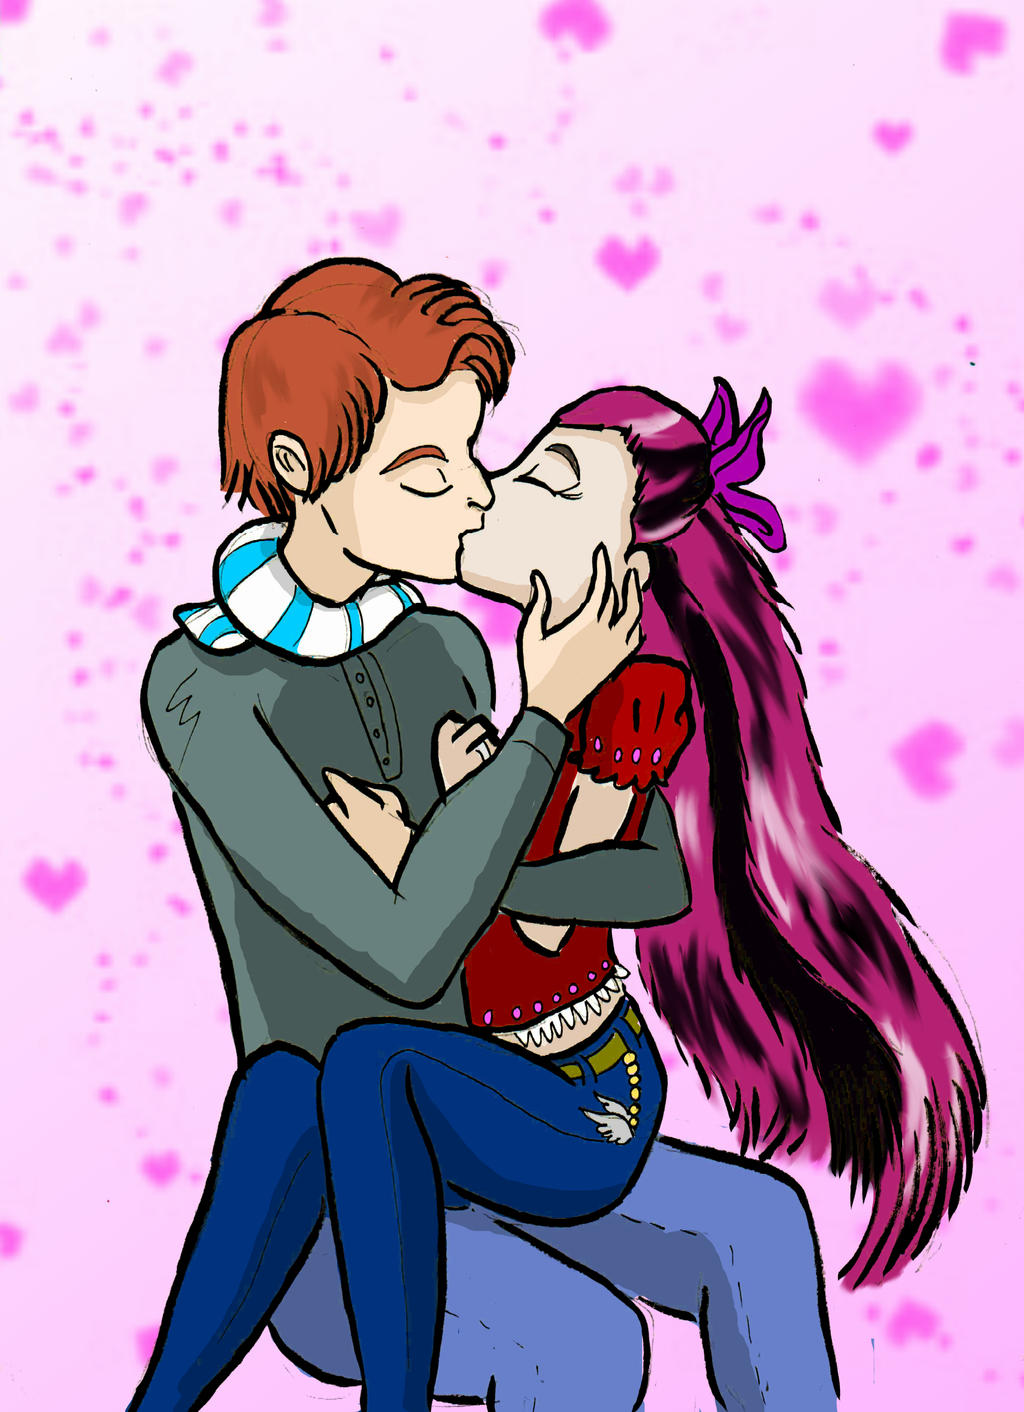 tumblr njj1un9VdN1s8z0xao1 1280 as well raven queen  ever after high by darkodordevic d6gy2fm in addition maxresdefault as well the red queen  by rotodisk d7vtt3y in addition raven and dexter by walkirie01 d8r3w67 besides logo dever after high 52398b9d878ce p moreover raven queen by moyschiaffino d6nwhll moreover ever after high apple white throne ing coloring page together with  in addition ever after high 04 together with . on free printable coloring pages raven queen ever after high